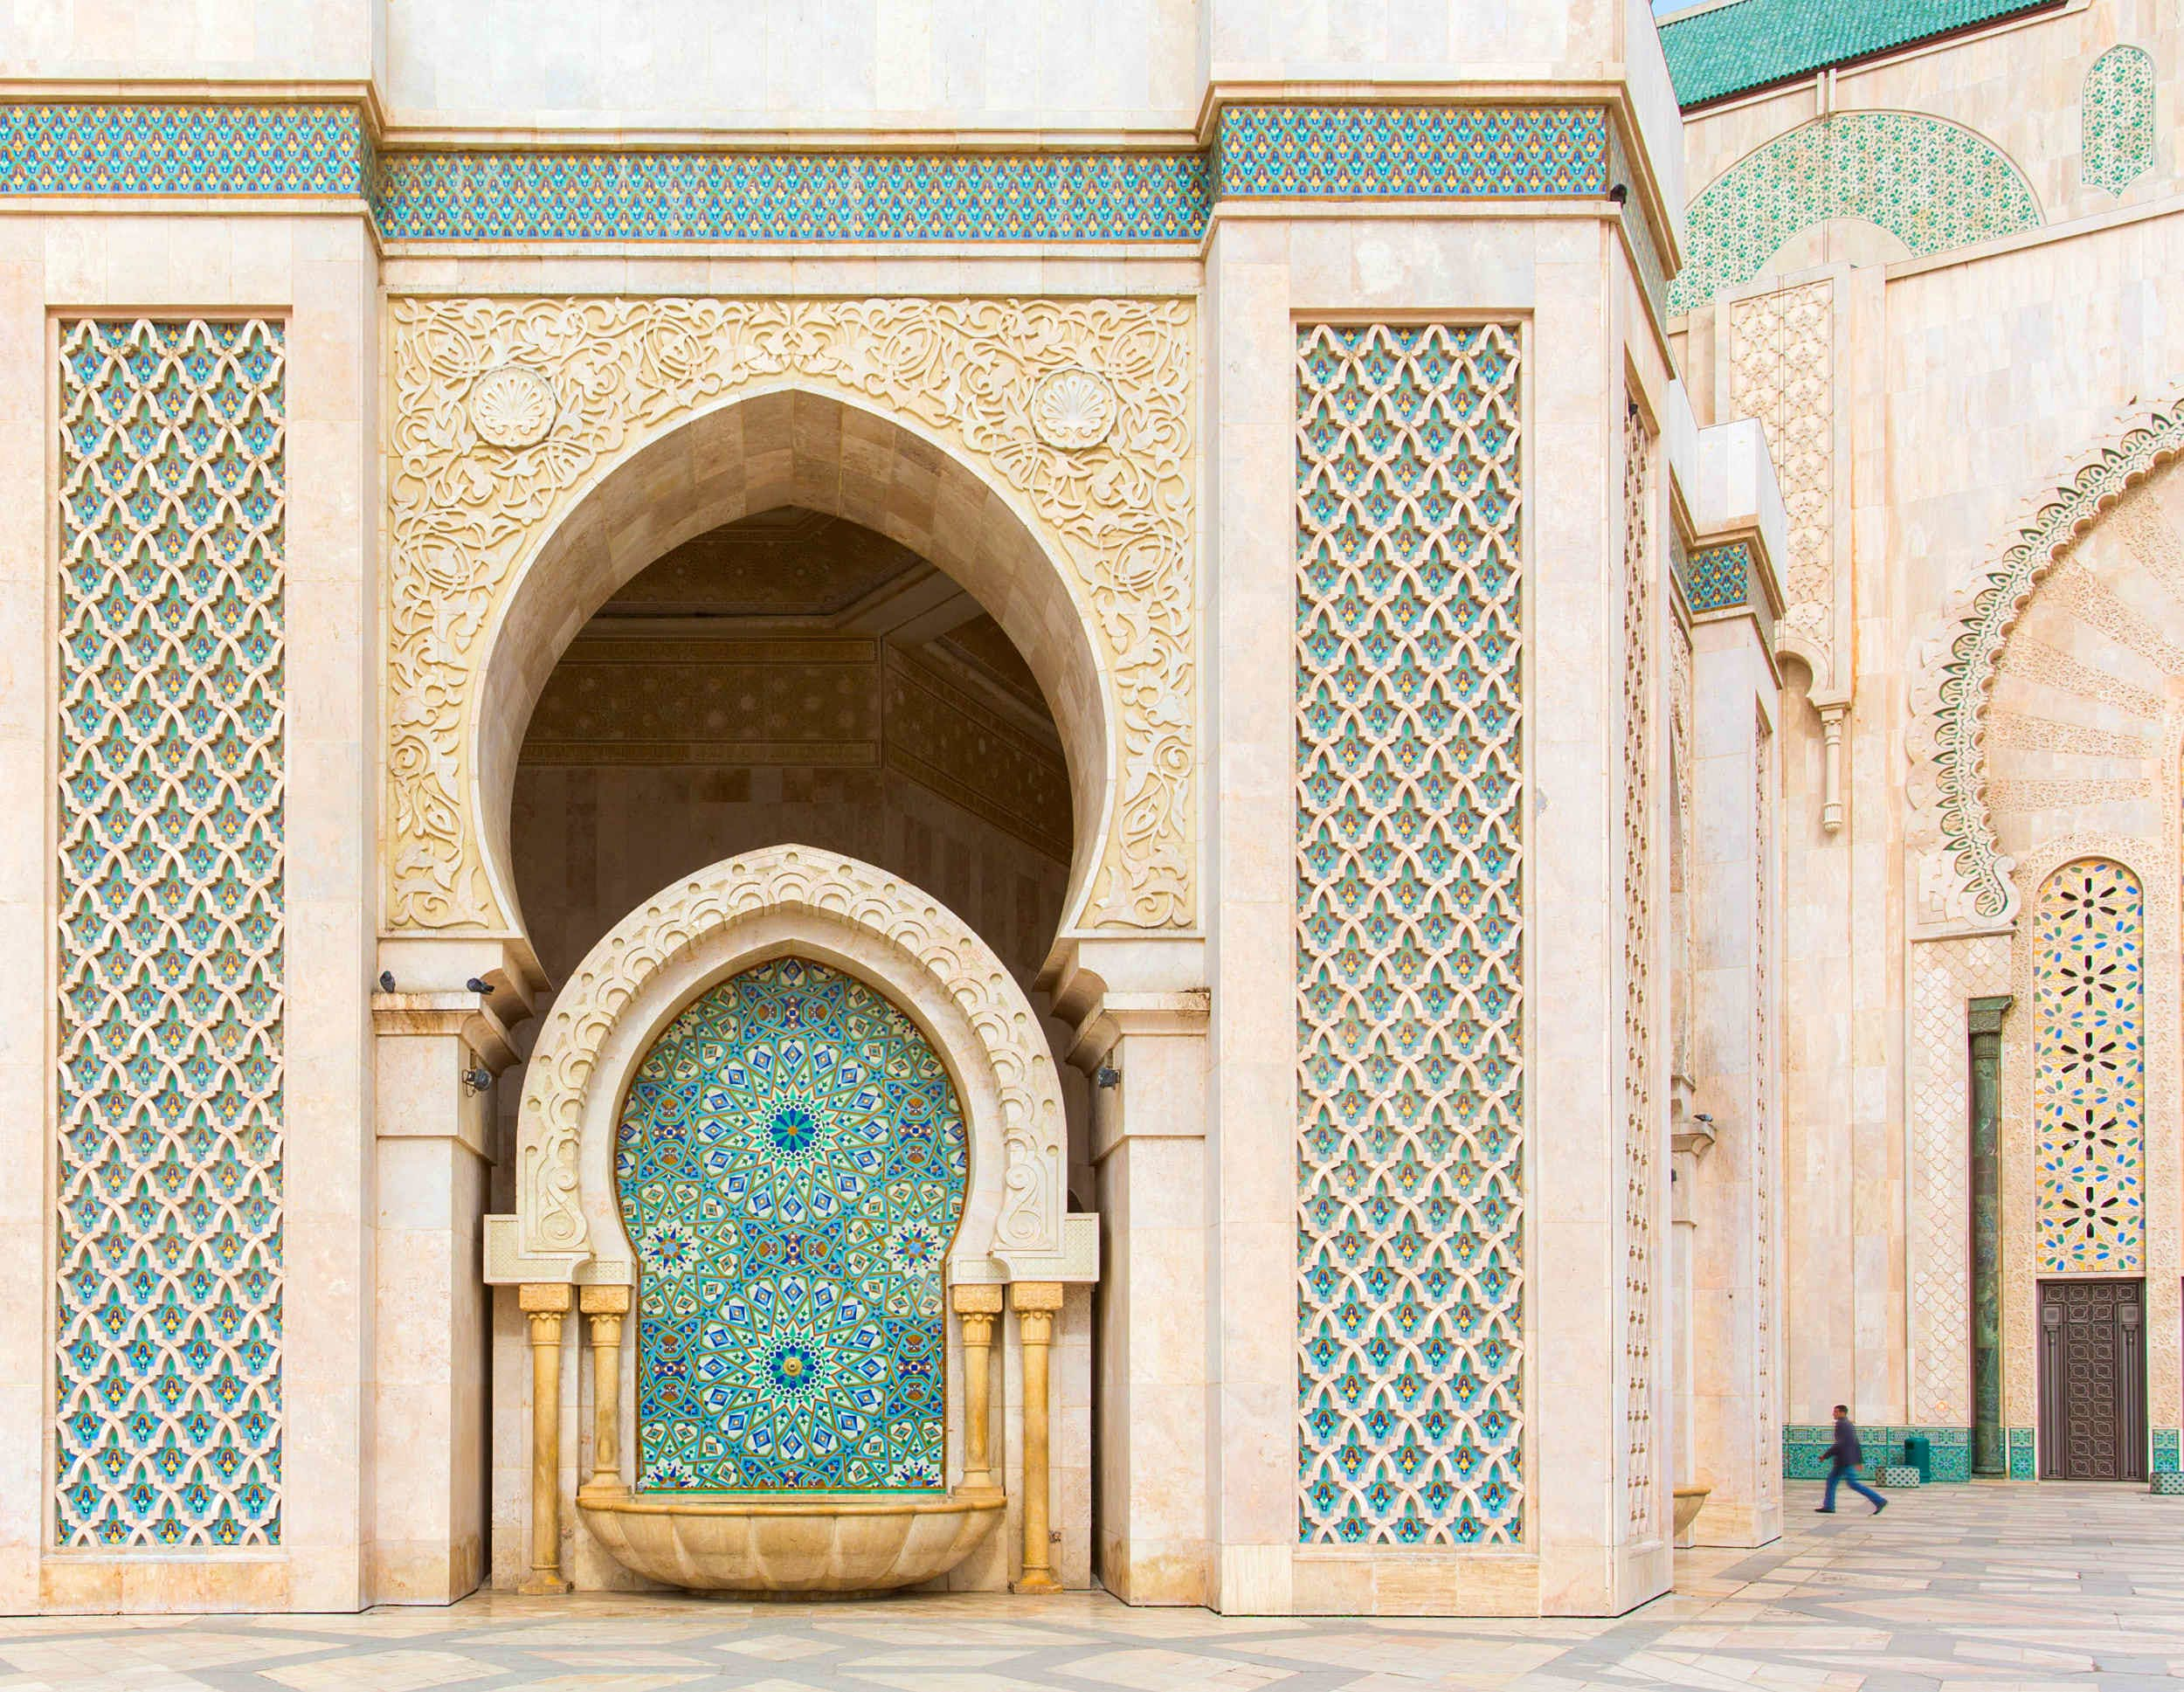 Travel News - Detail of Hassan II Mosque in Casablanca, Morocco